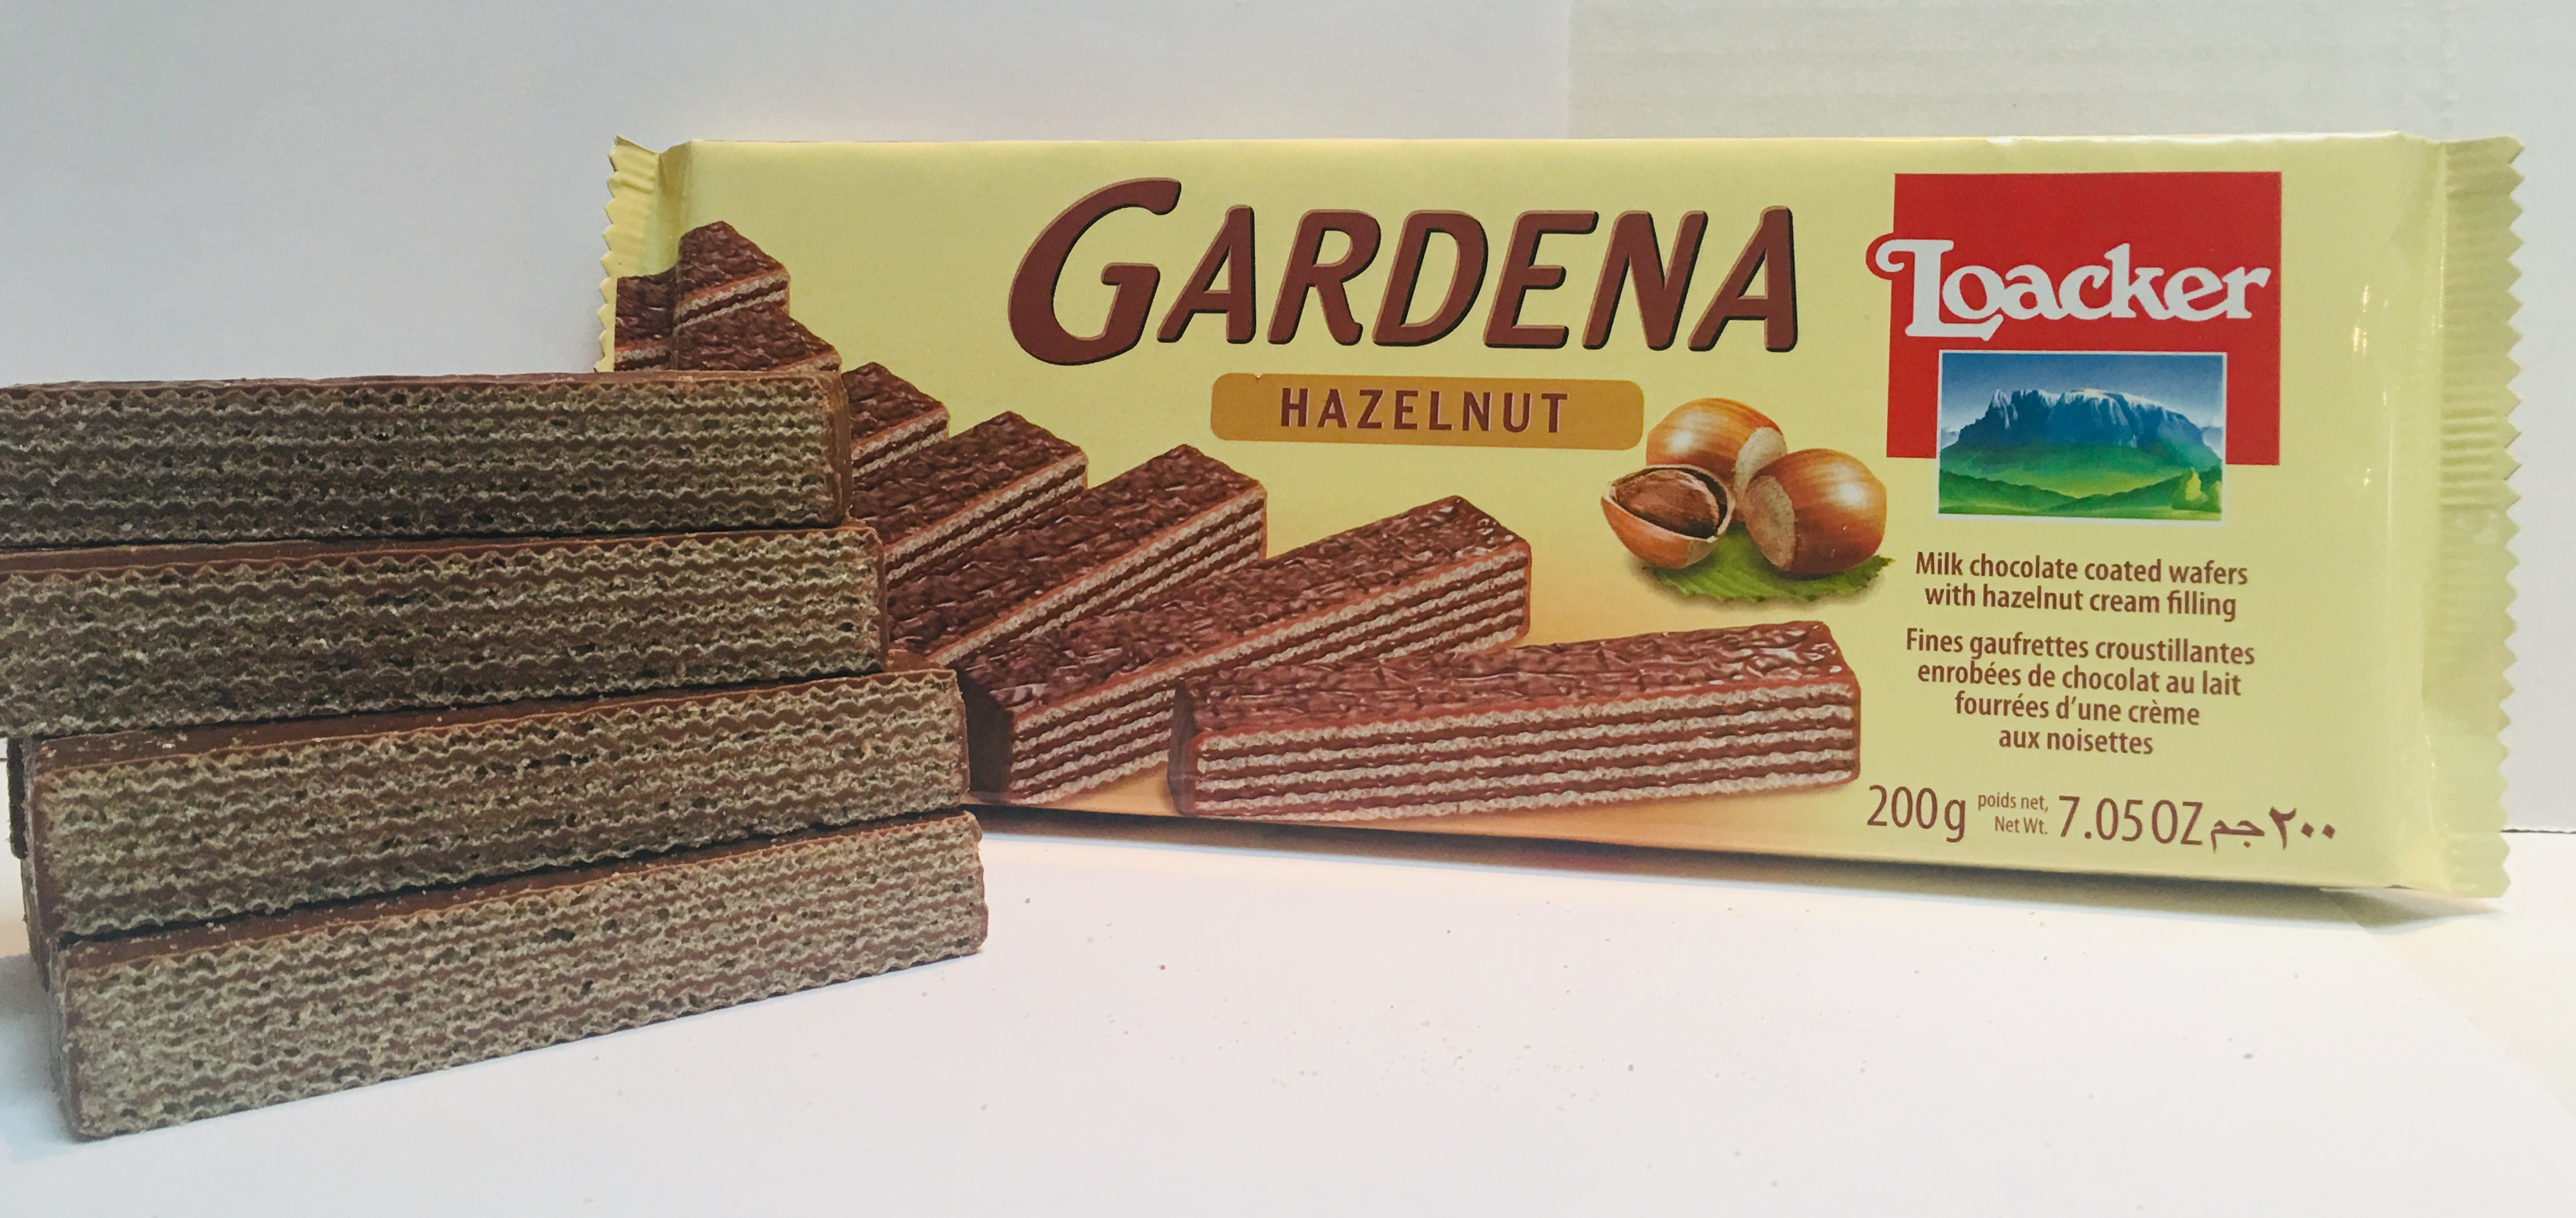 Loacker Gardena - Milk Chocolate with Hazelnut cream Image